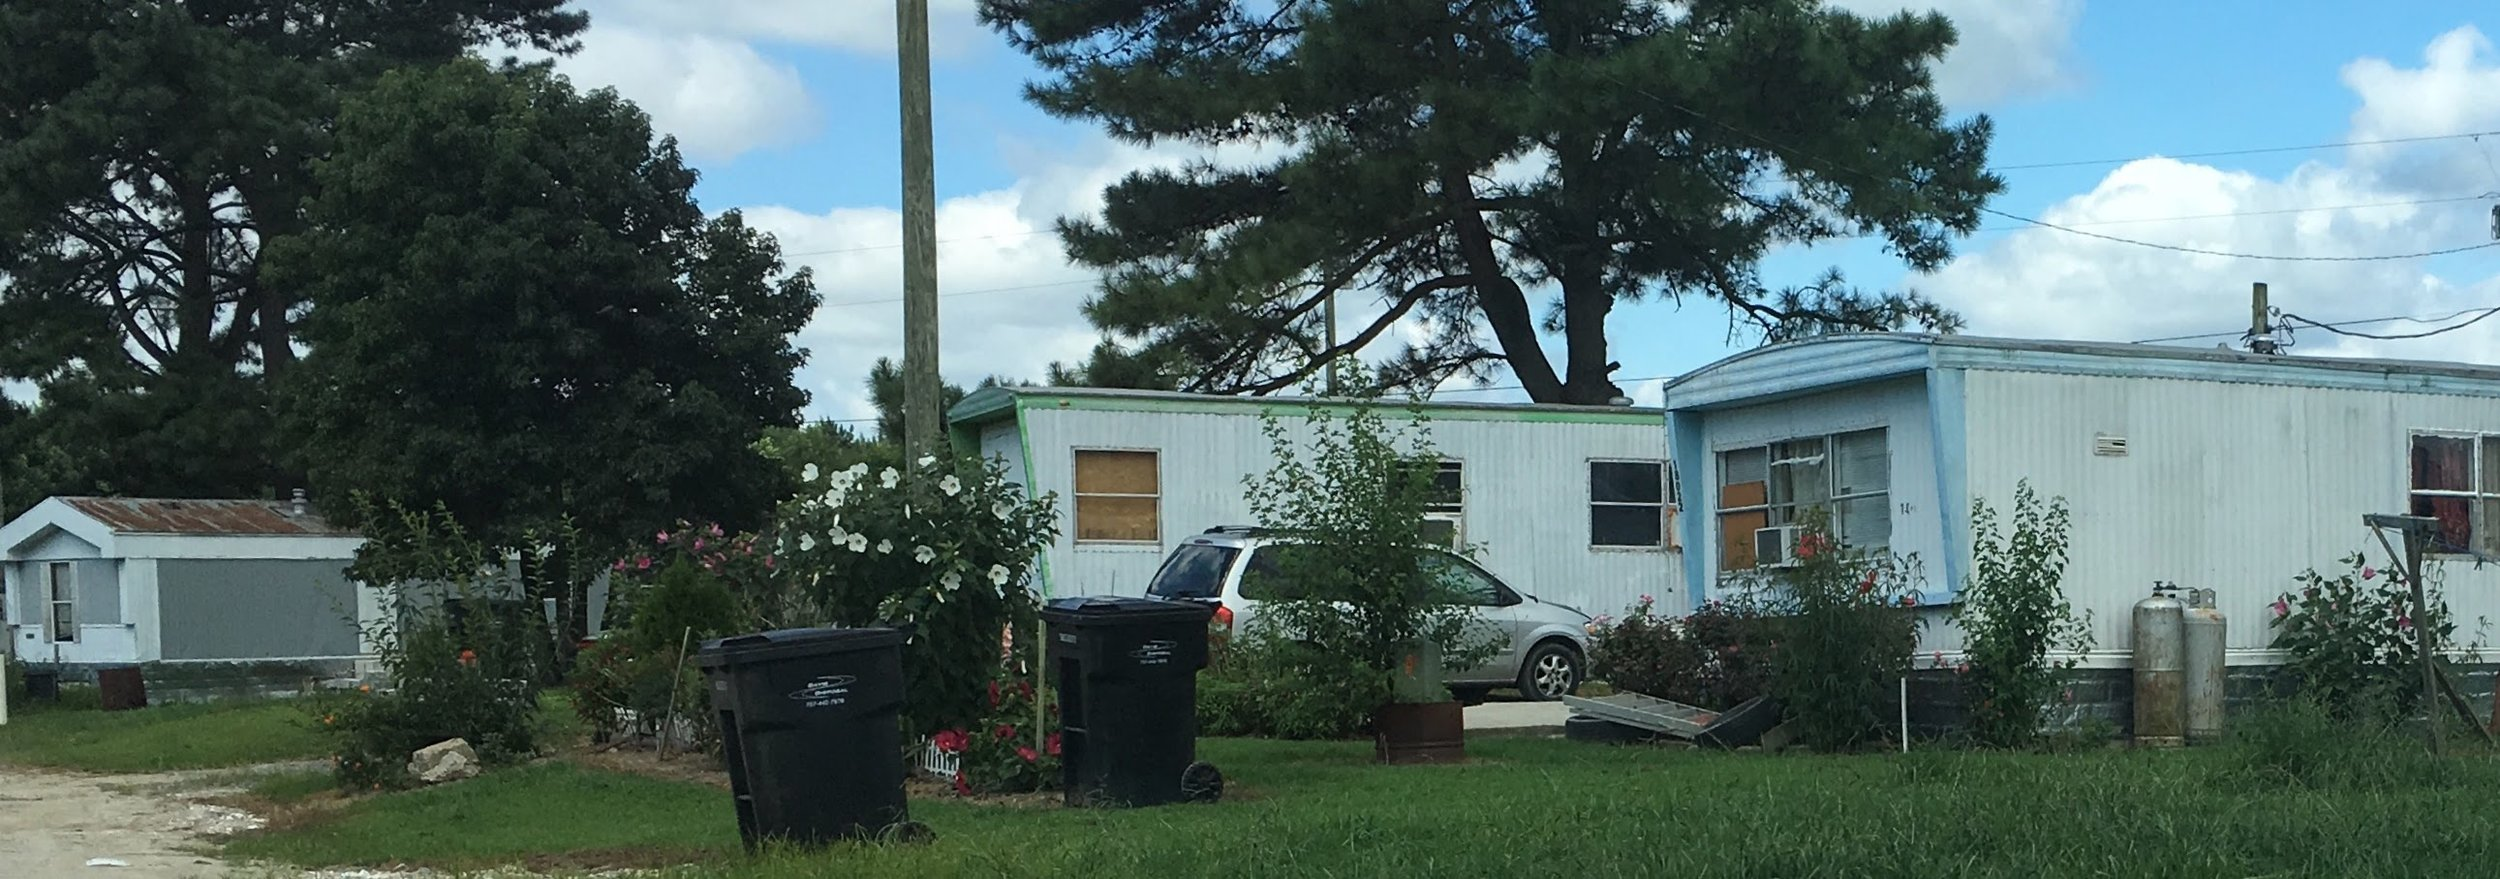 Latino homes at Rudd's Trailer Park were targeted for aggressive enforcement